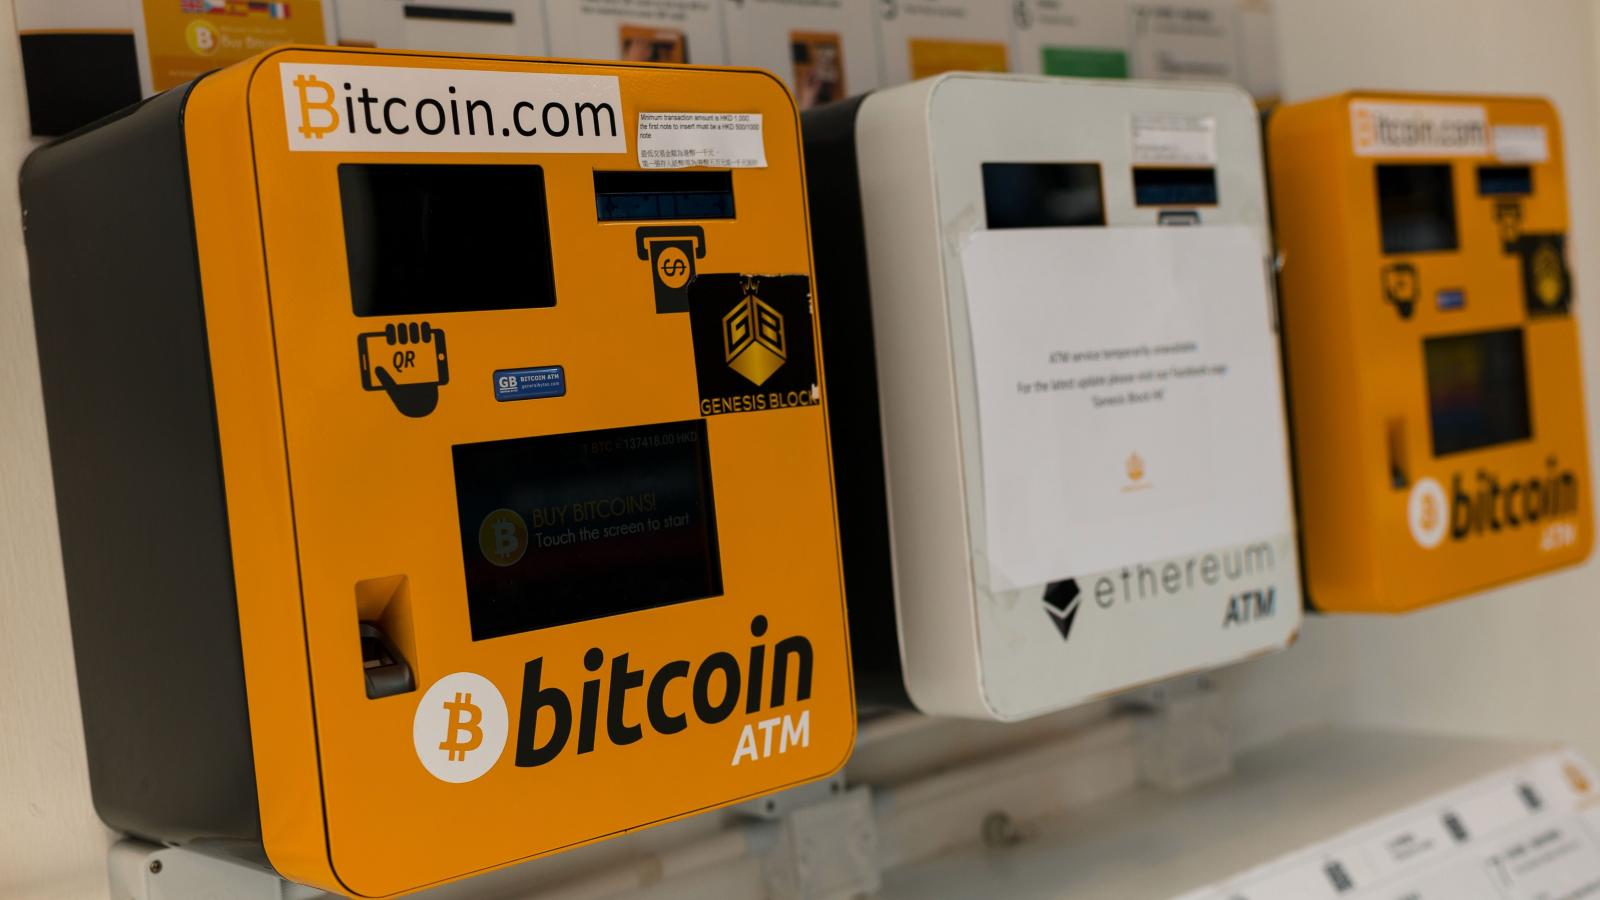 Bitcoin of three bitcoin ATMs mounted side by side on the wall